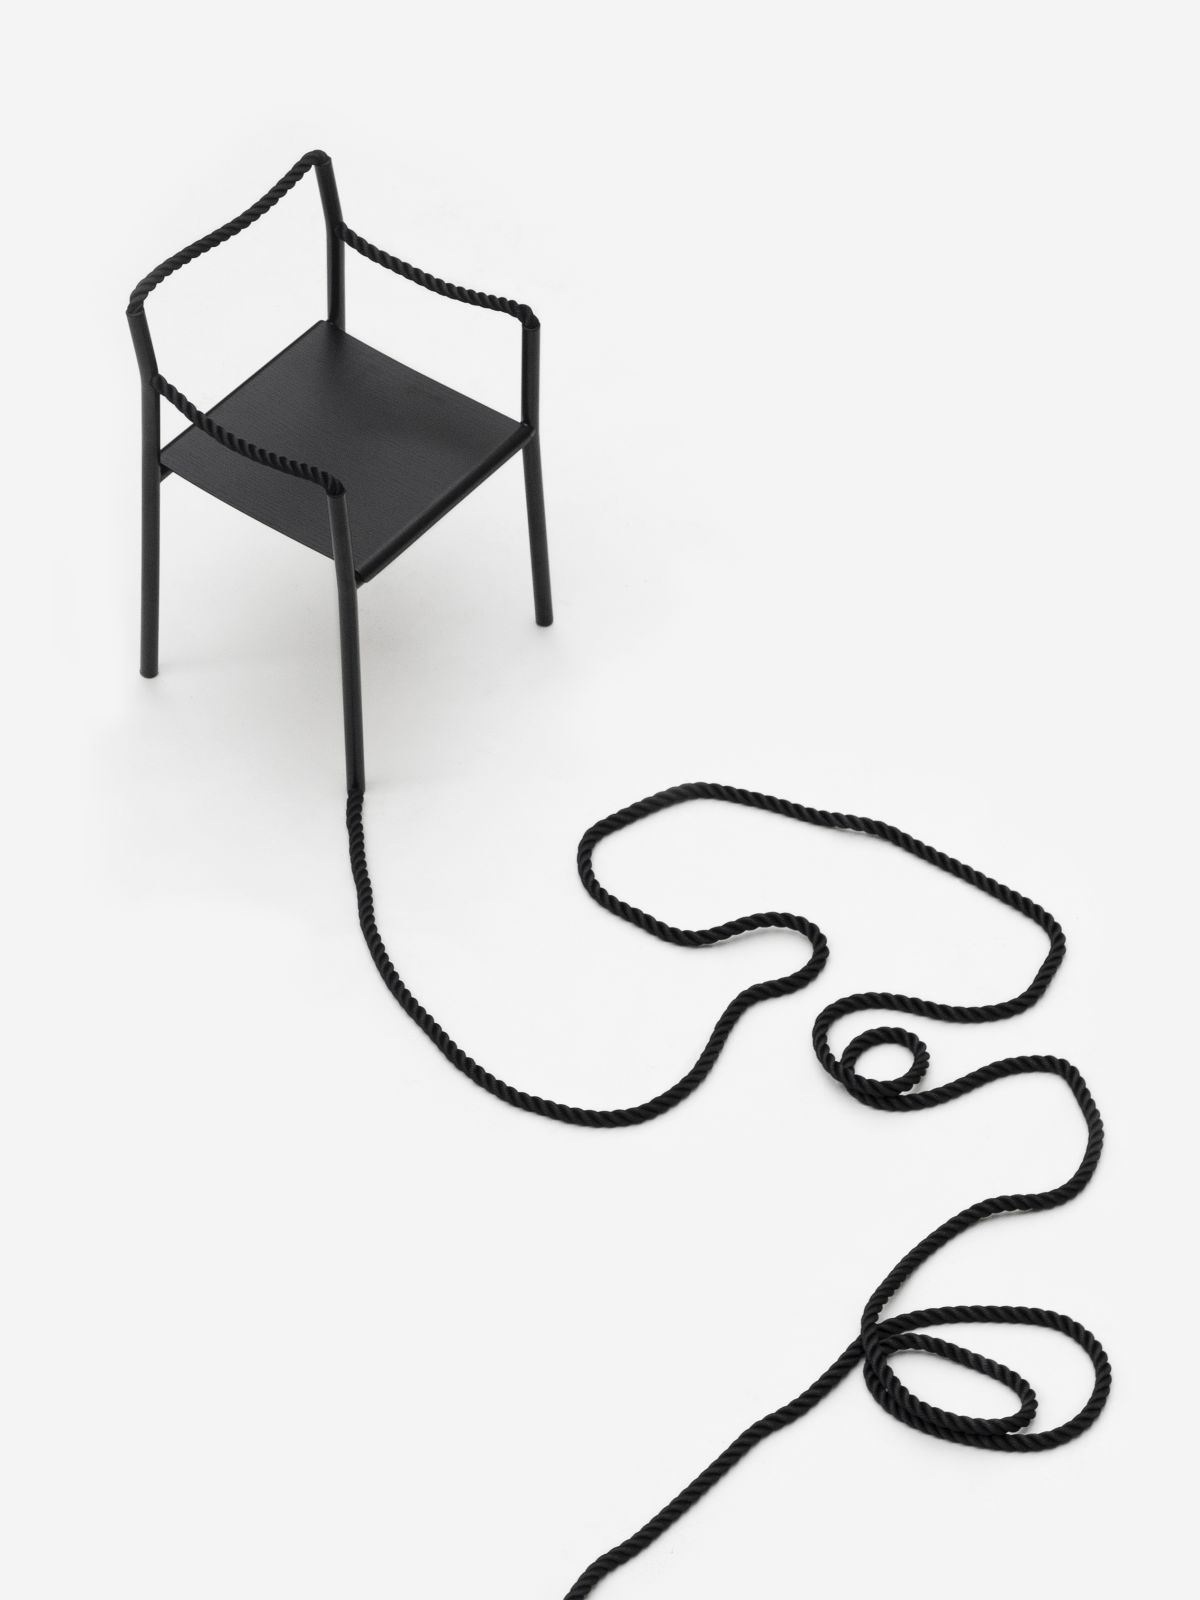 Rope_Chair_15-3328290